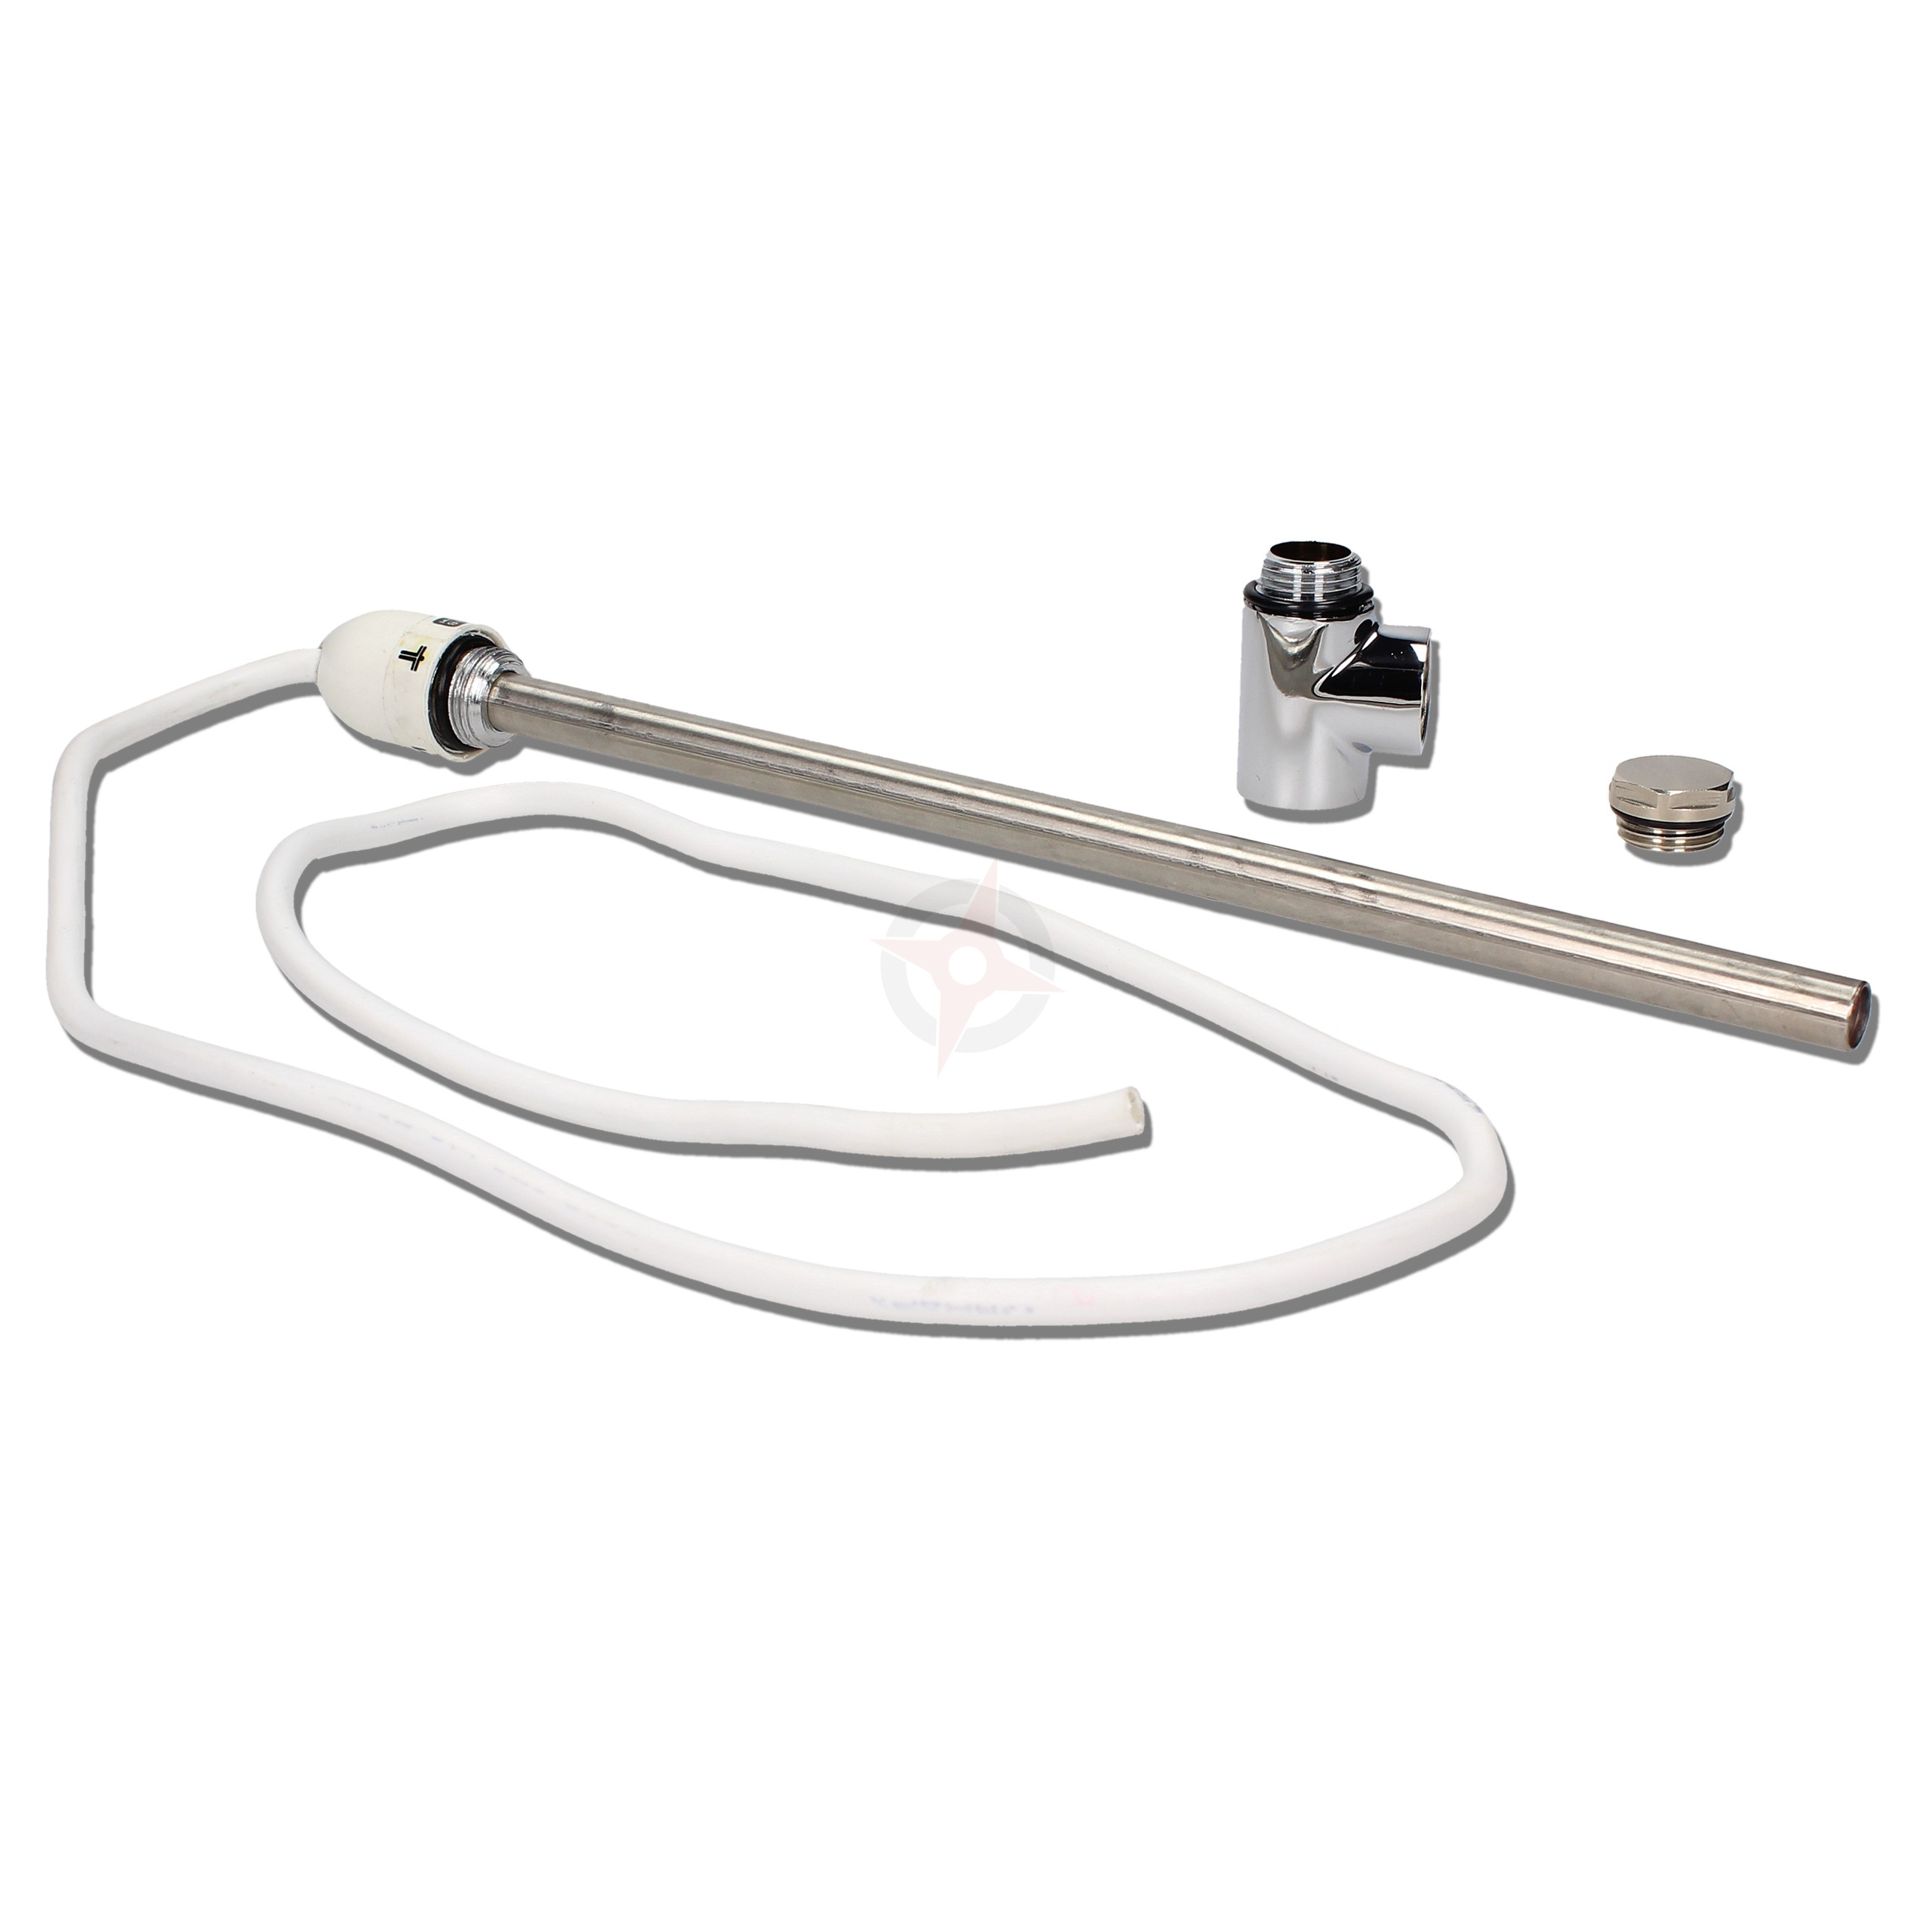 400 Watt Dual Fuel Towel Rail Summer Element c/w Tee Piece